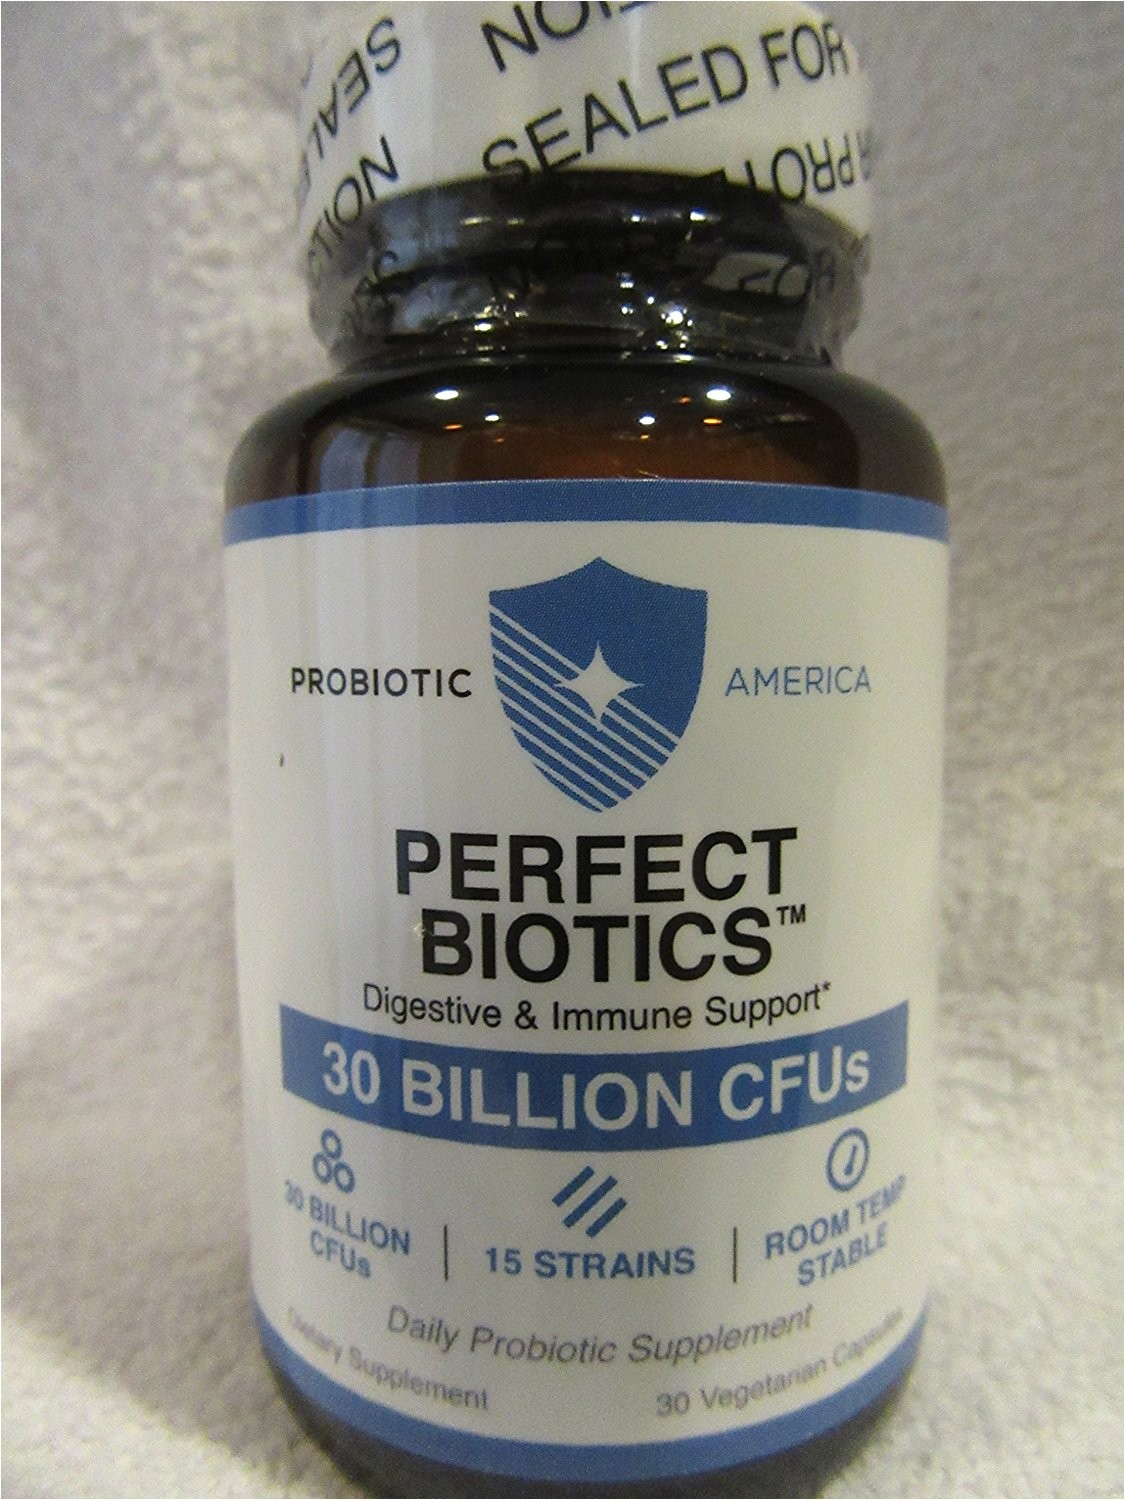 probiotic america perfect biotics digestive and immune support 30 billion cfus 15 strains 30 capsule 1 jar walmart com